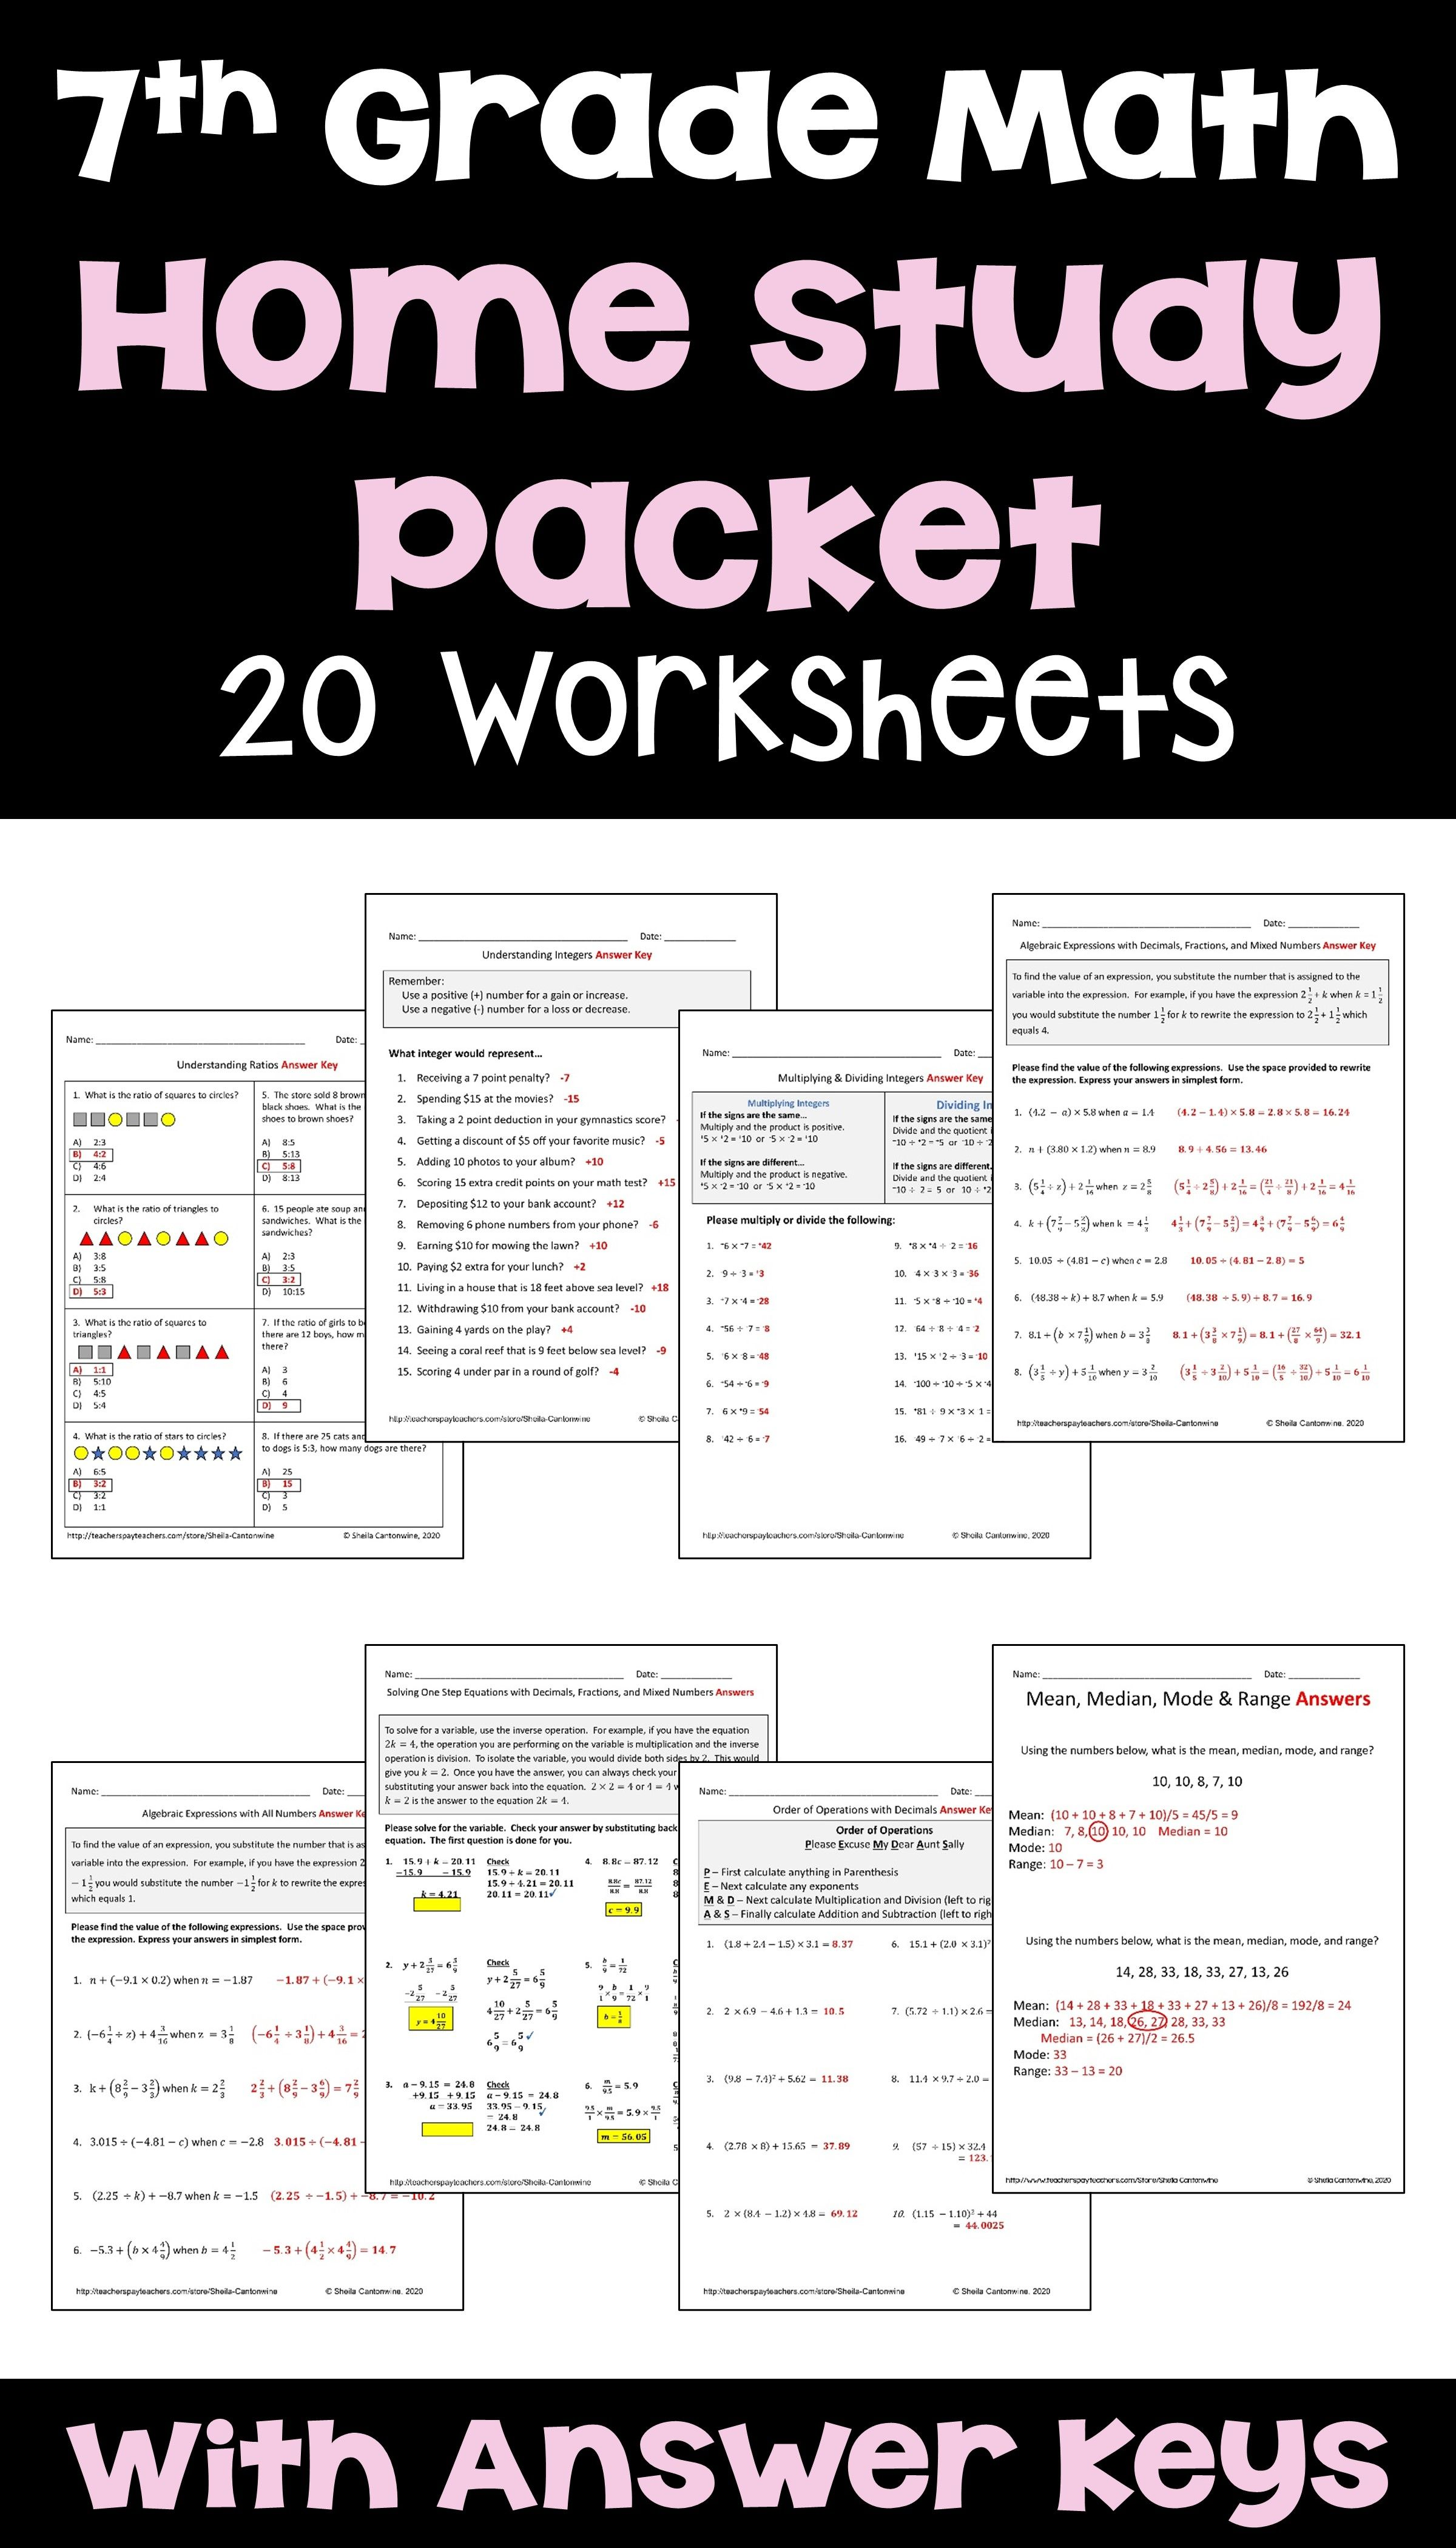 7th Grade Math Home Study Packet For Distance Learning